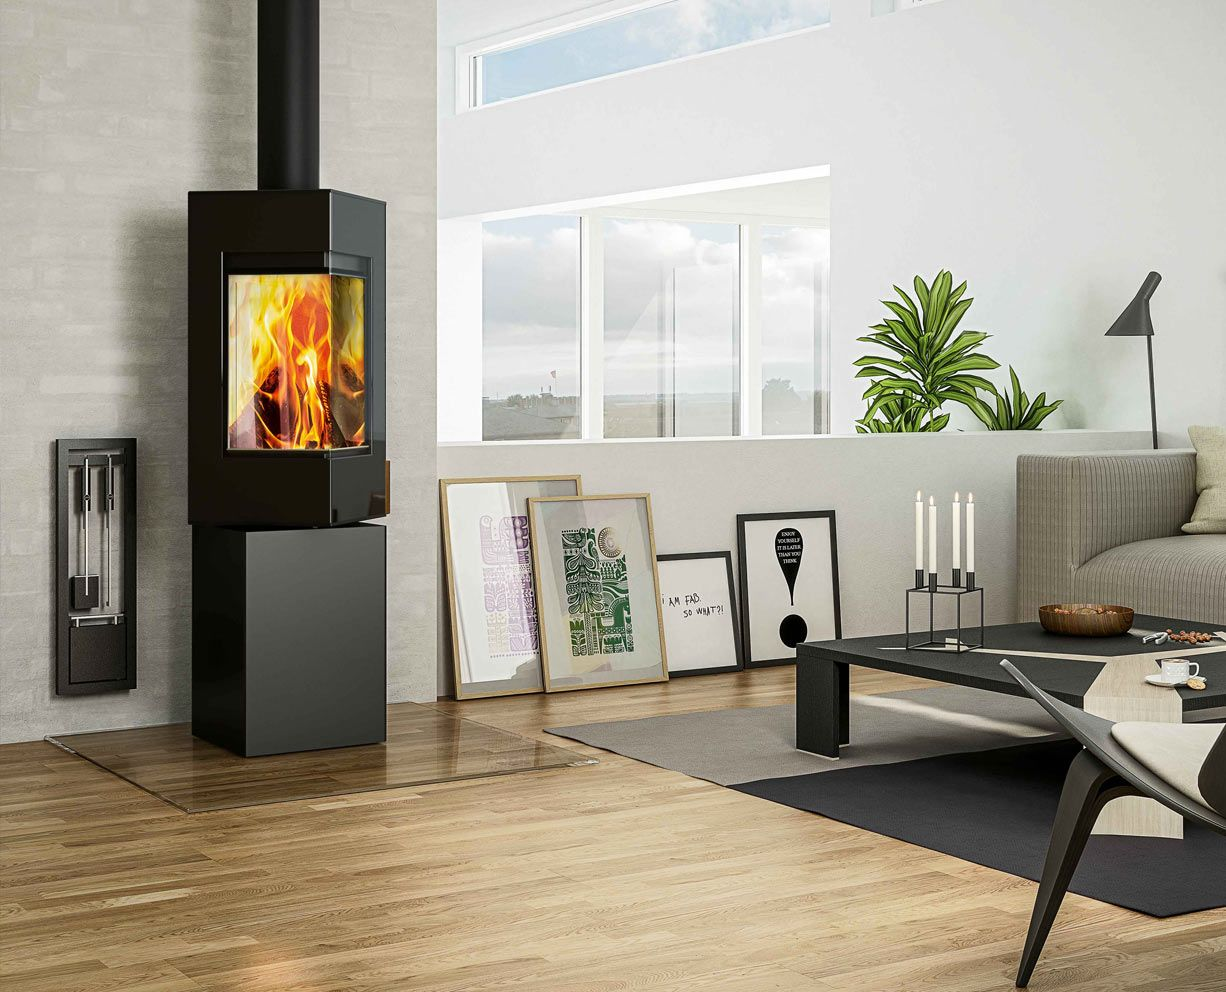 Rais Q-Be Wood Burning Stove From Fireplace Products